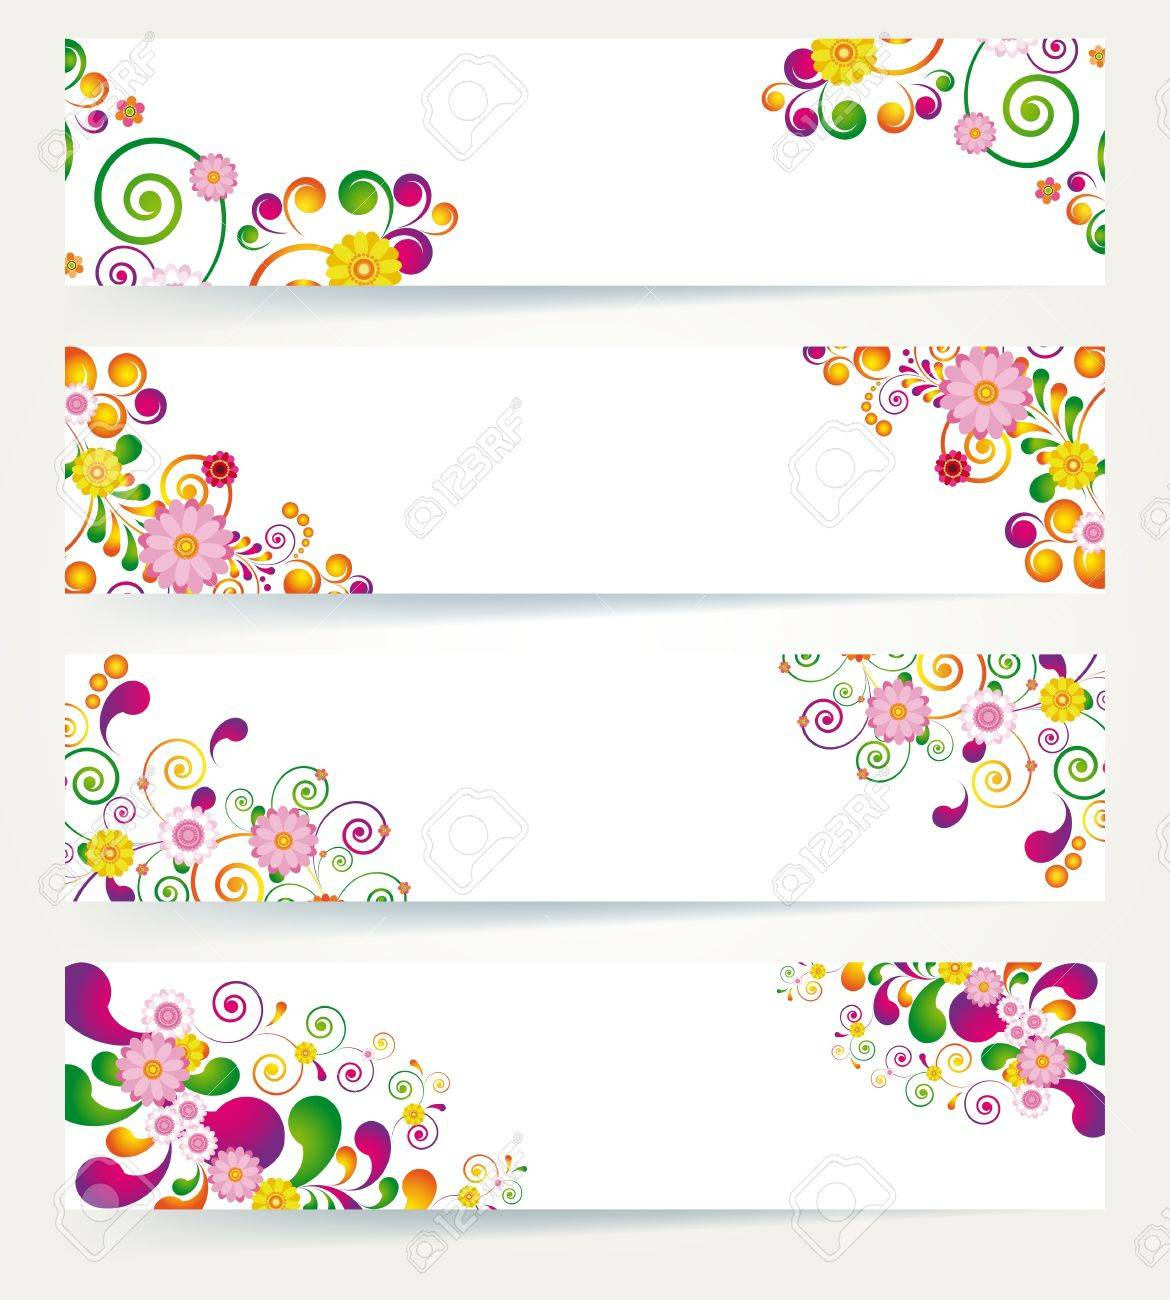 Floral Design Banners Royalty Free Cliparts Vectors And Stock